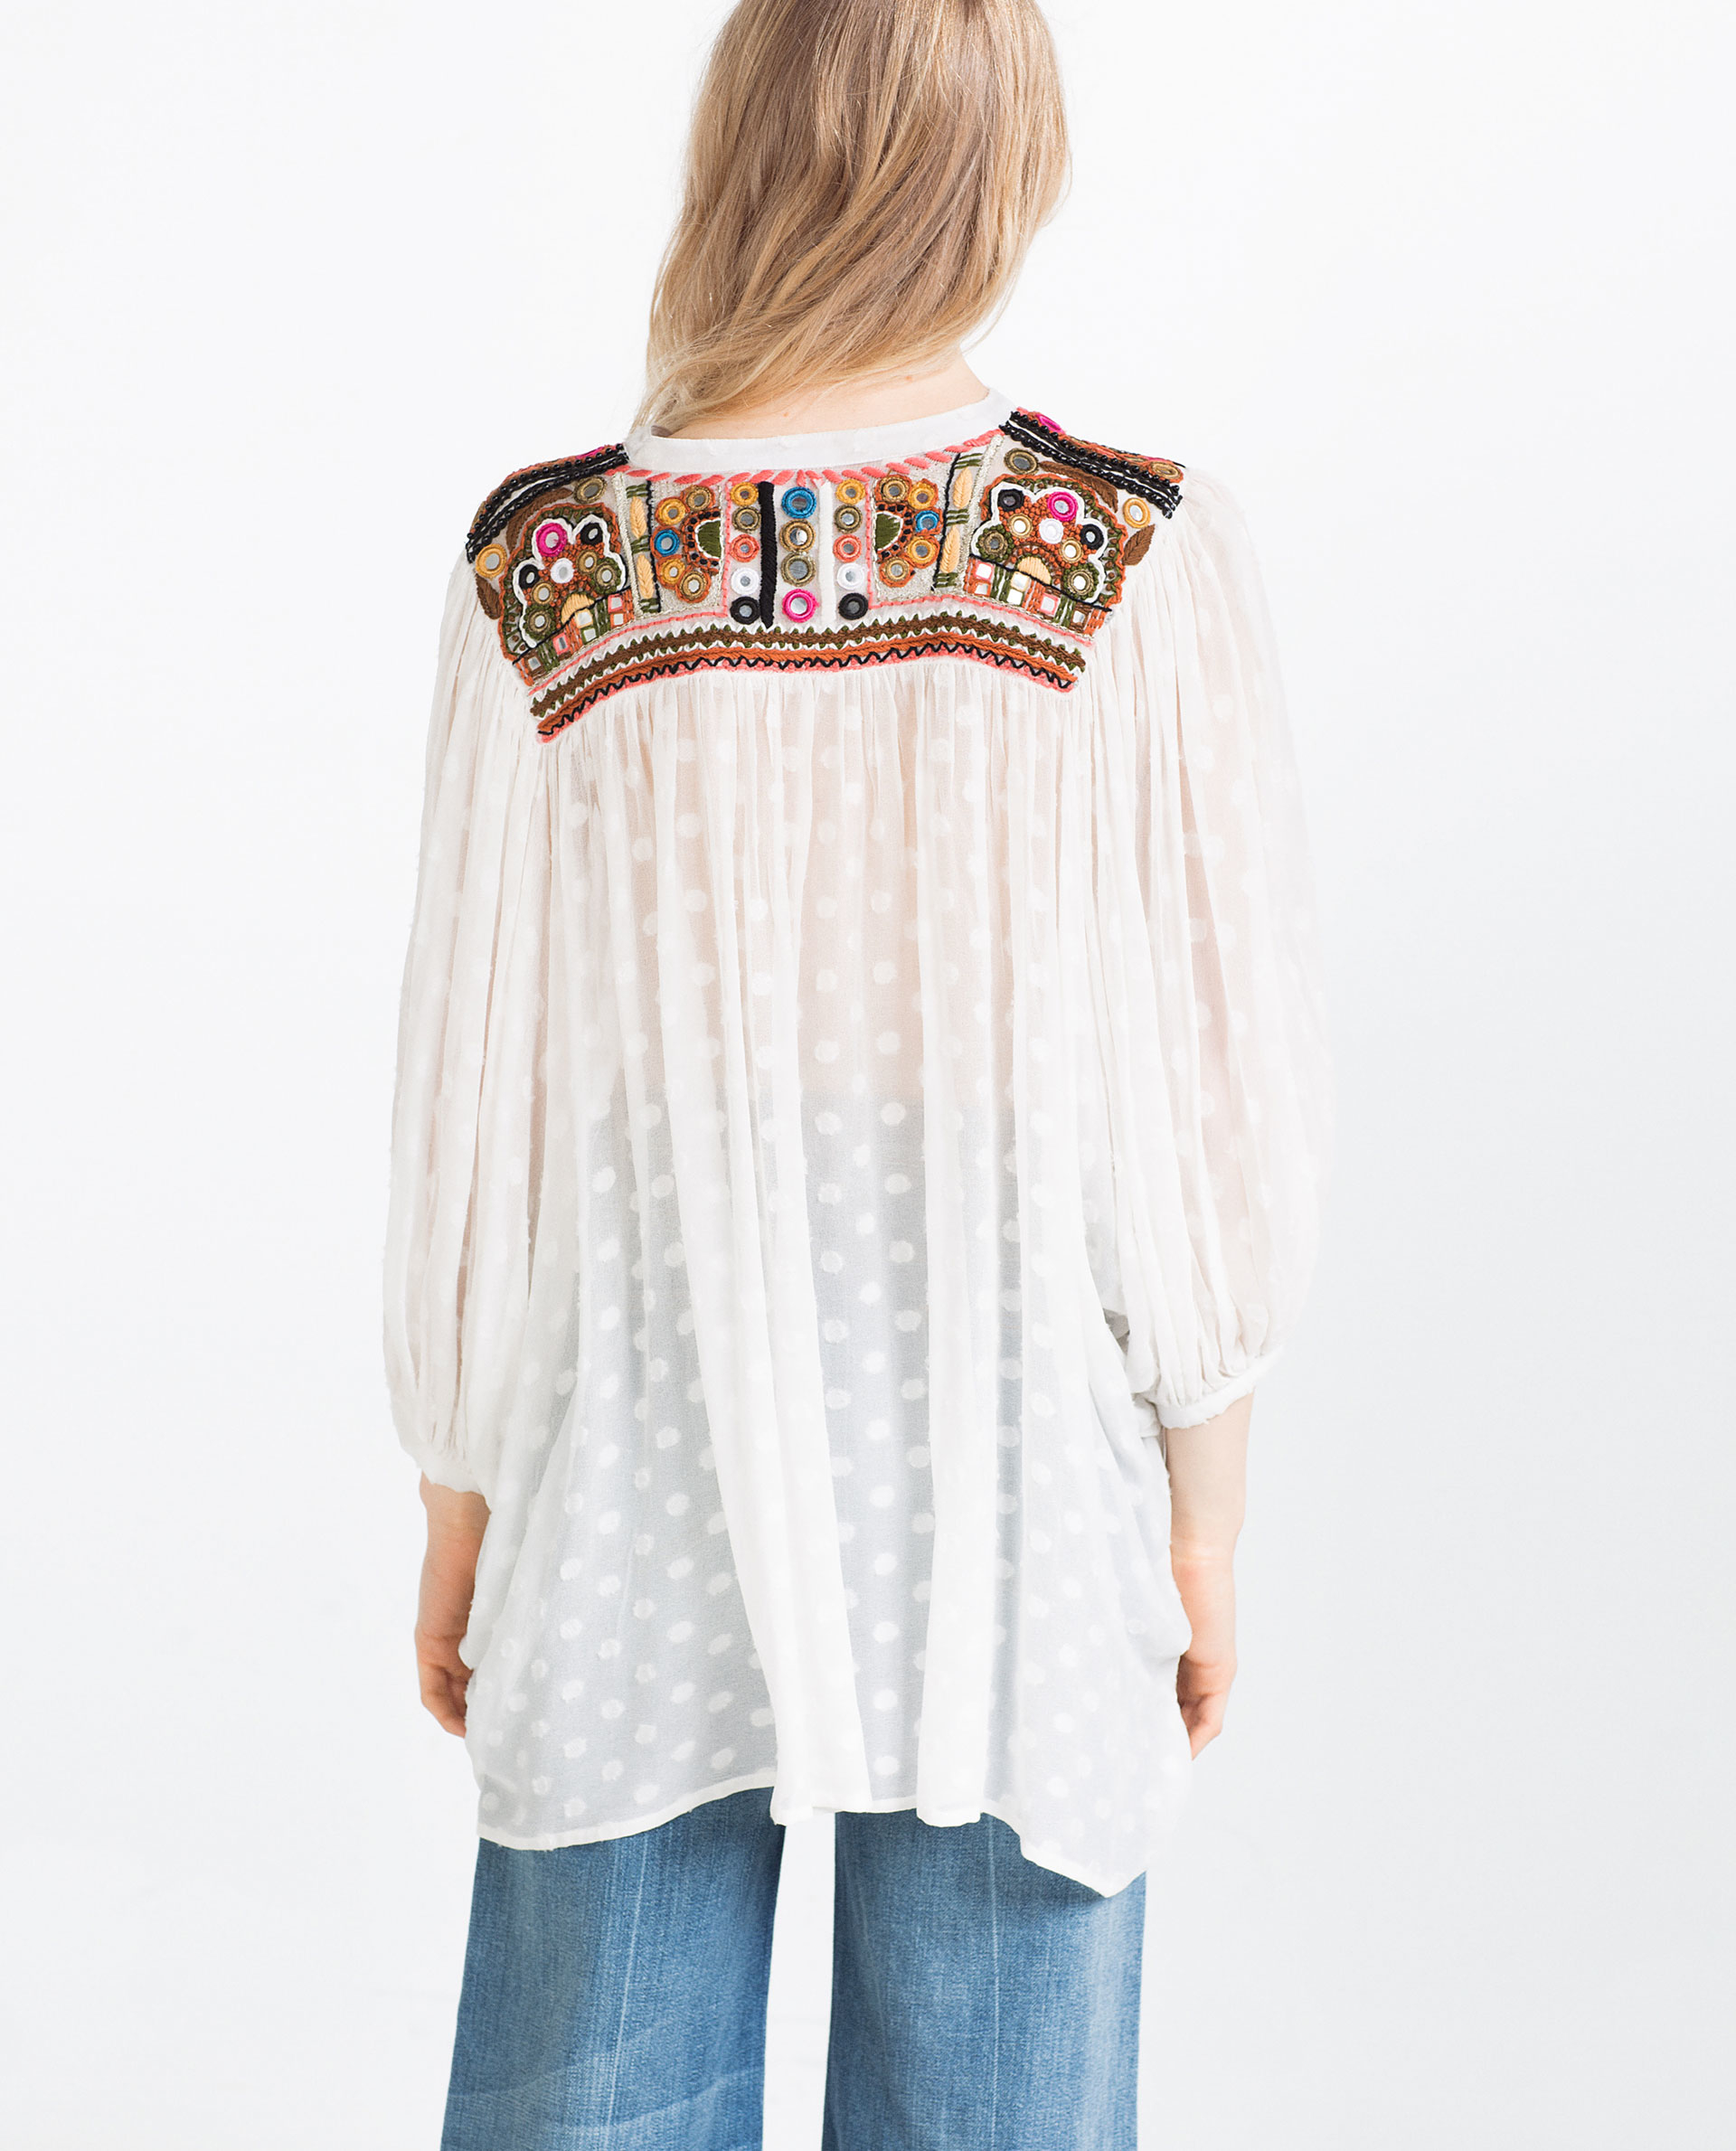 Zara Embroidered Blouse 115